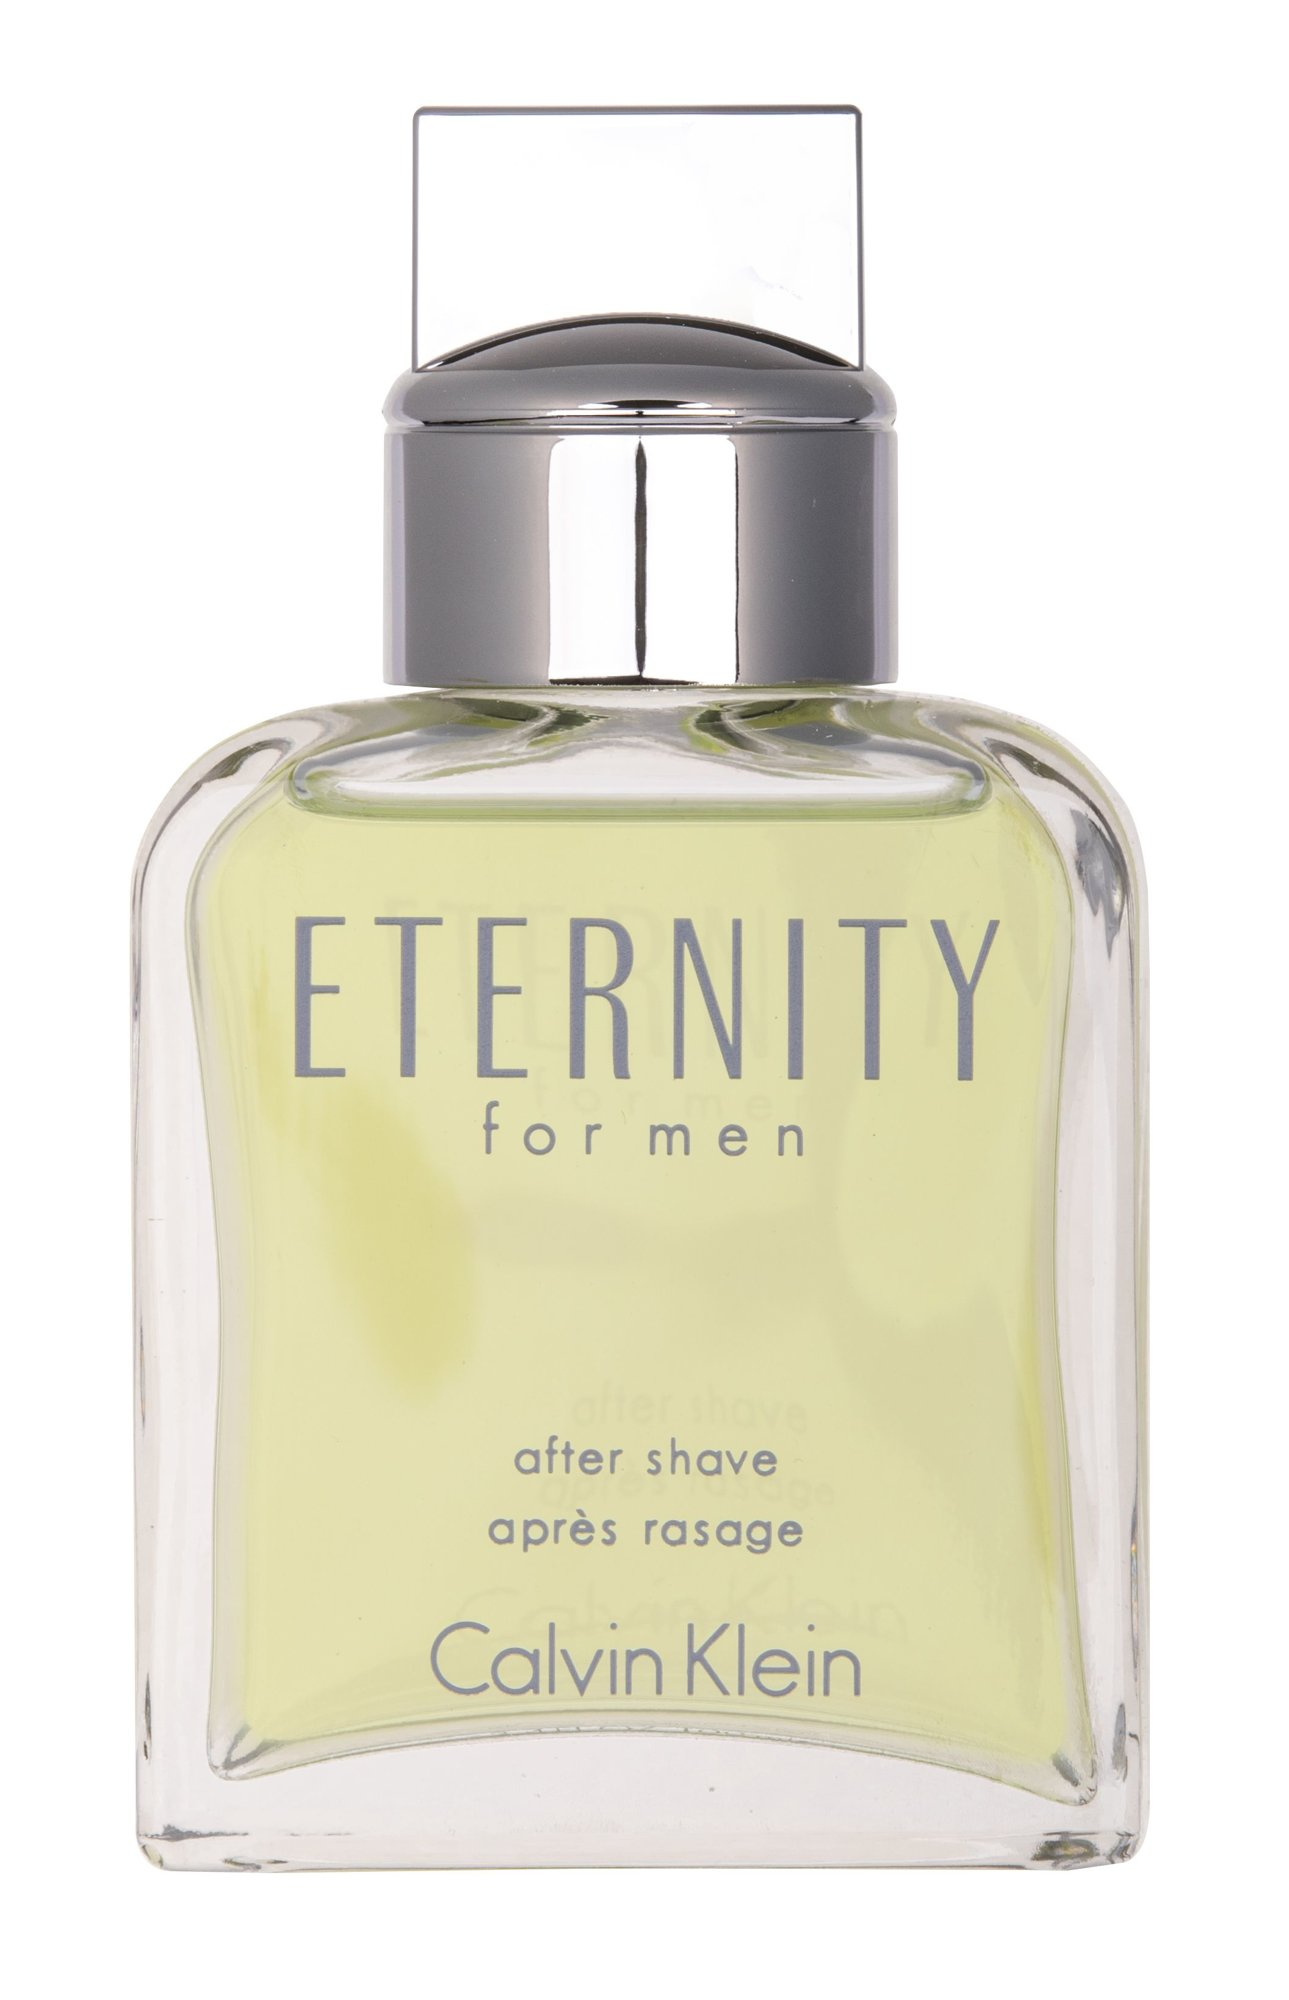 Calvin Klein Eternity Aftershave 100ml